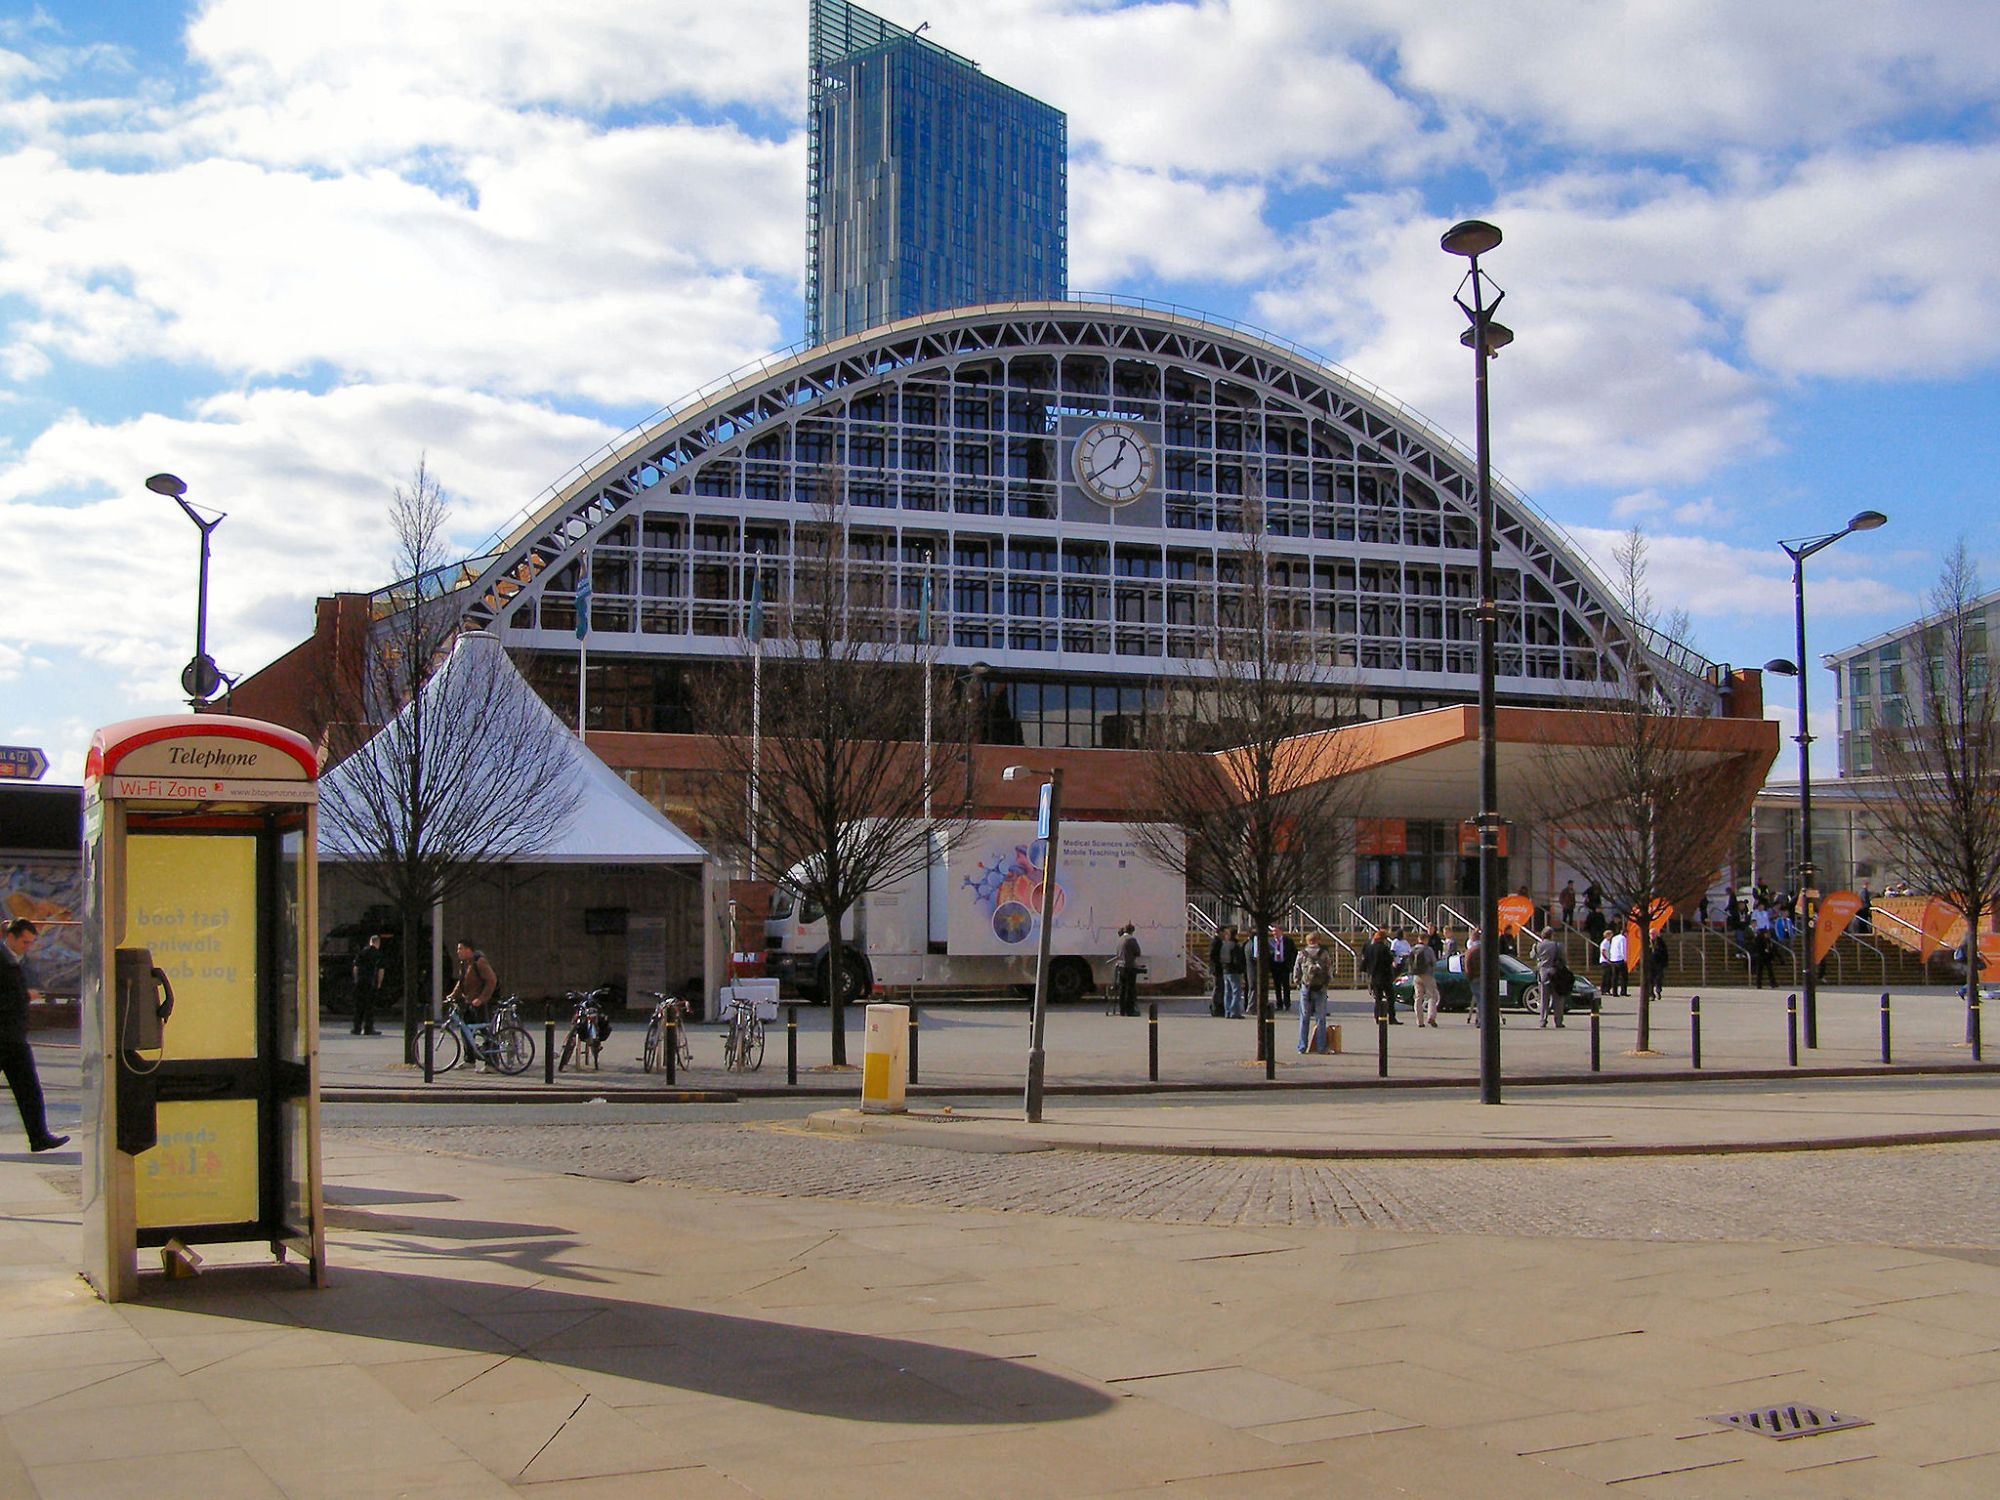 Manchester Central (G-Mex) Front view of the former Manchester Central Station (now an exhibition complex). Viewed from Windmill Street.